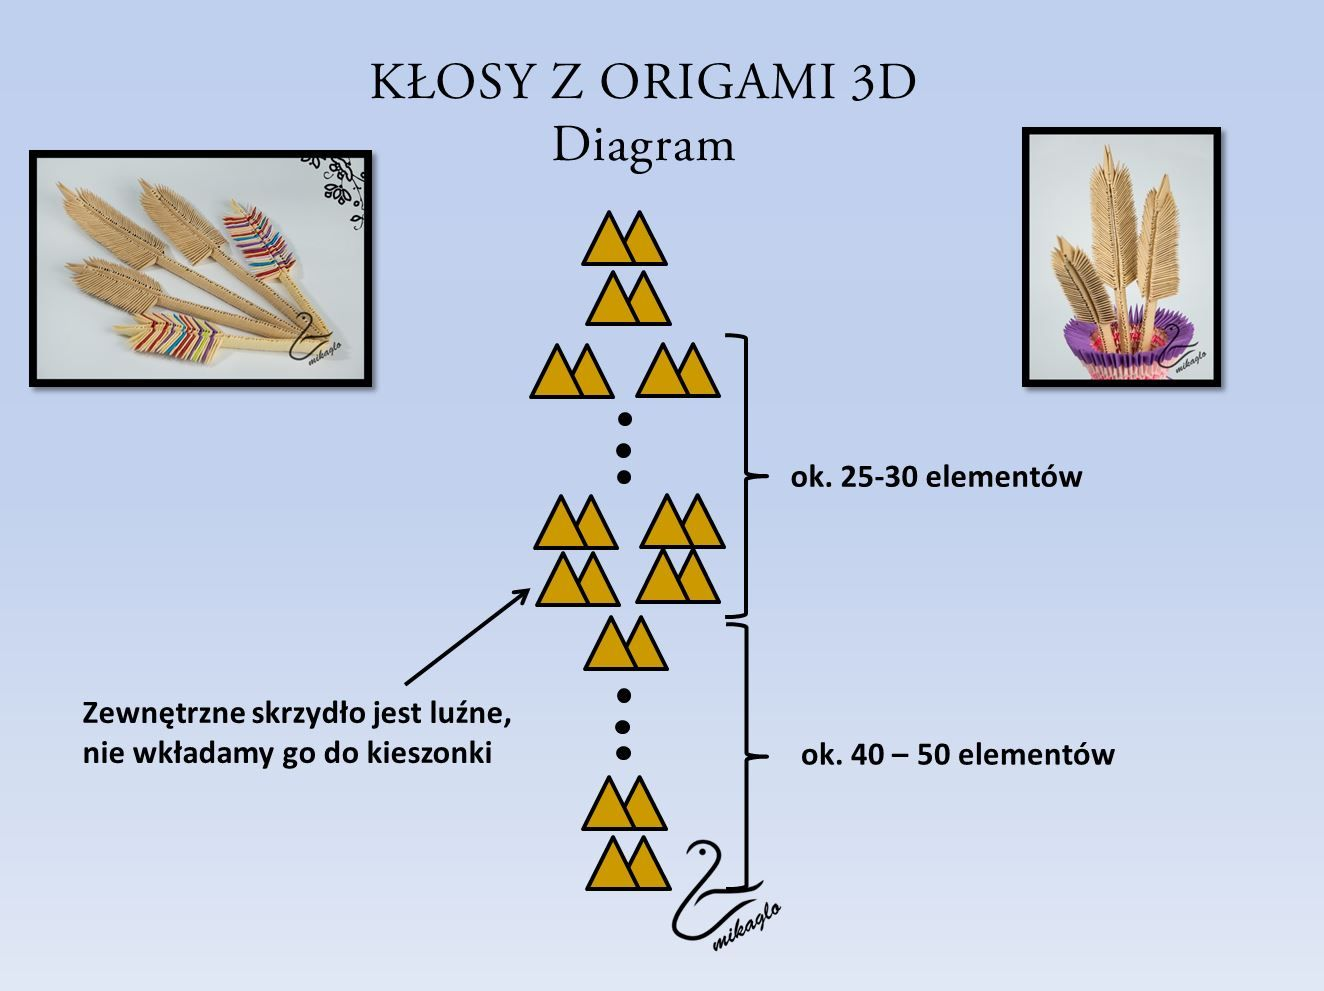 Pin By Nena On 3d Origami Pinterest And Diagrams Crea Modular Free Pattern Cute Sewing